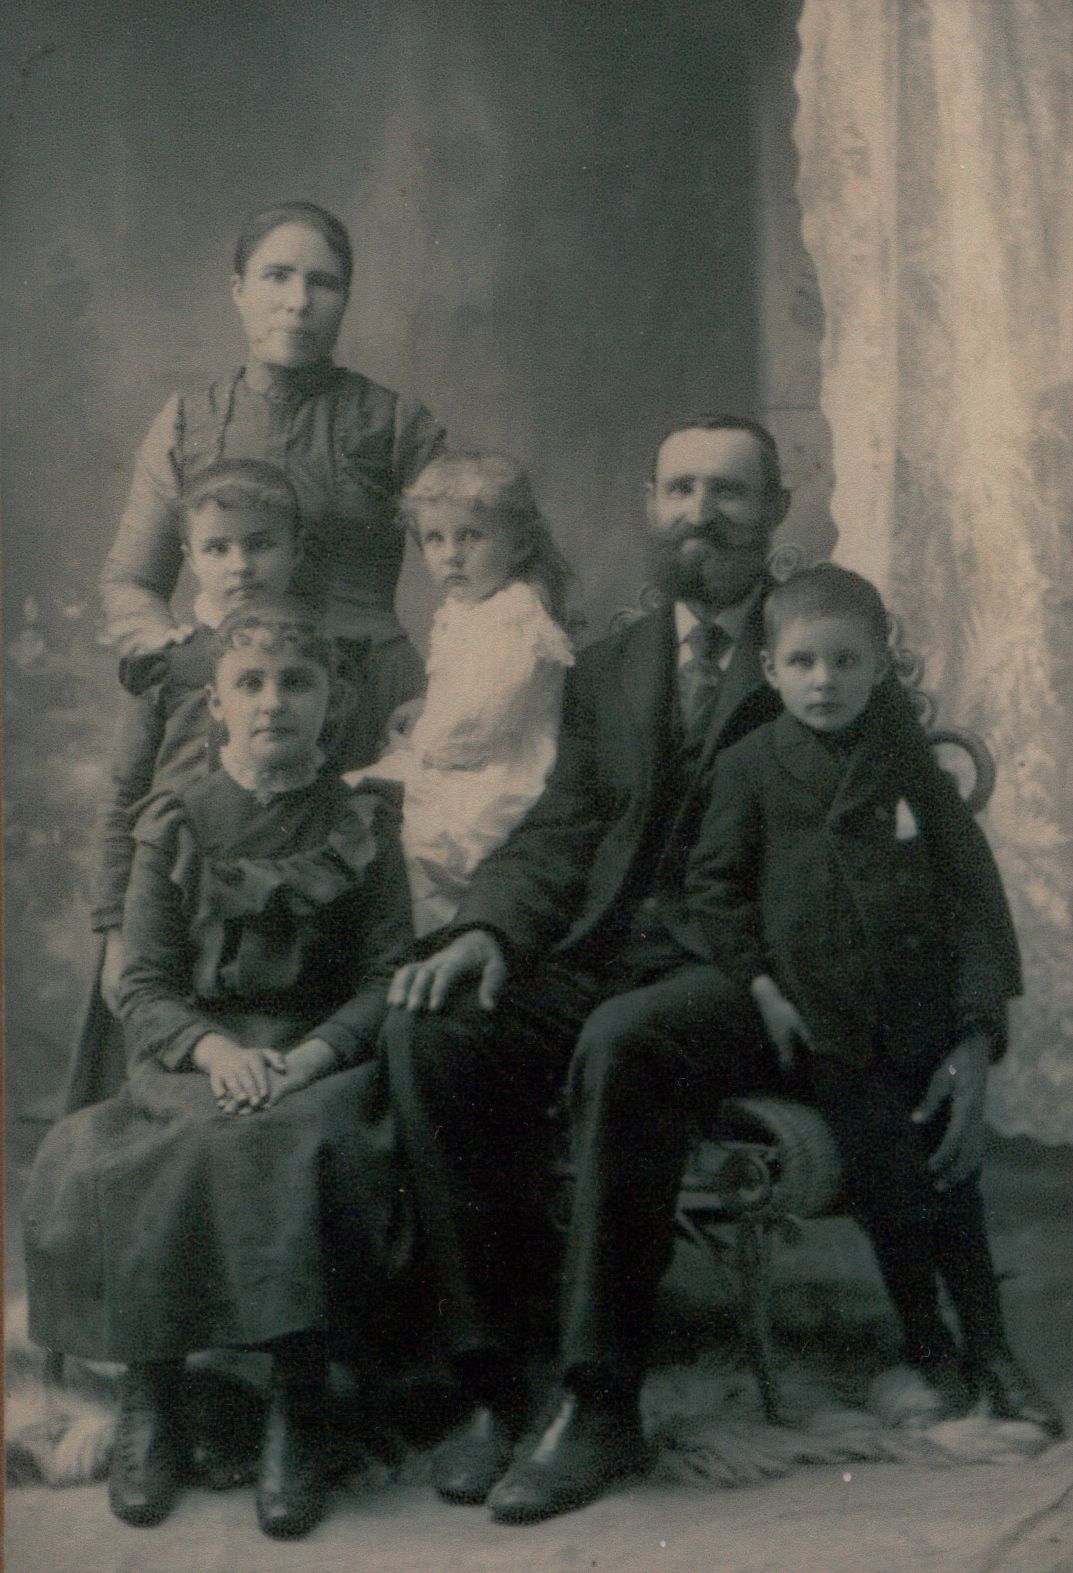 Learn How To Date An Old Photograph To Find Ancestors And Build Your Family Tree!